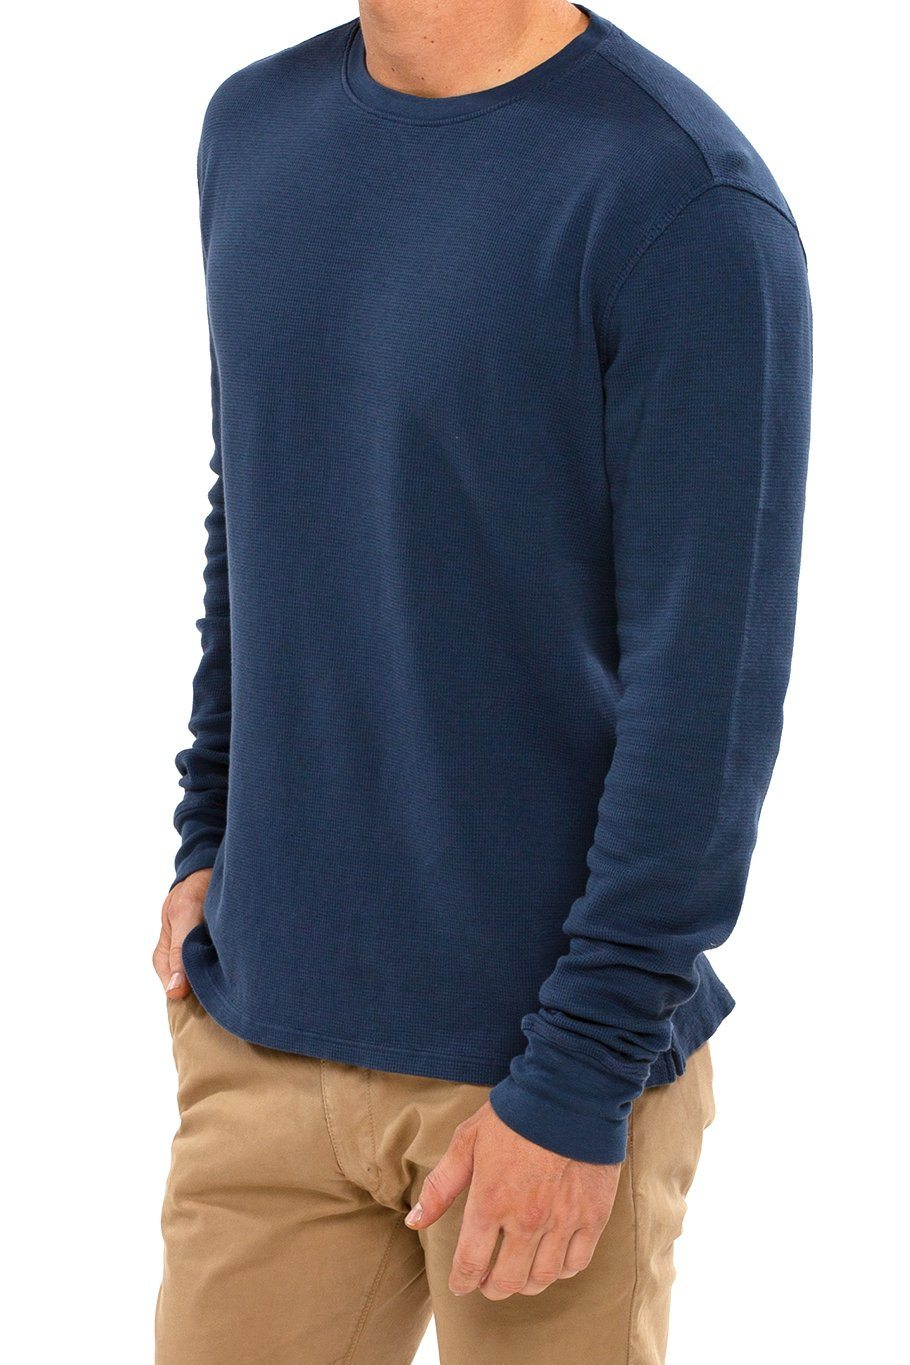 Thermal Long Sleeve Crew Tee - Jewel Blue